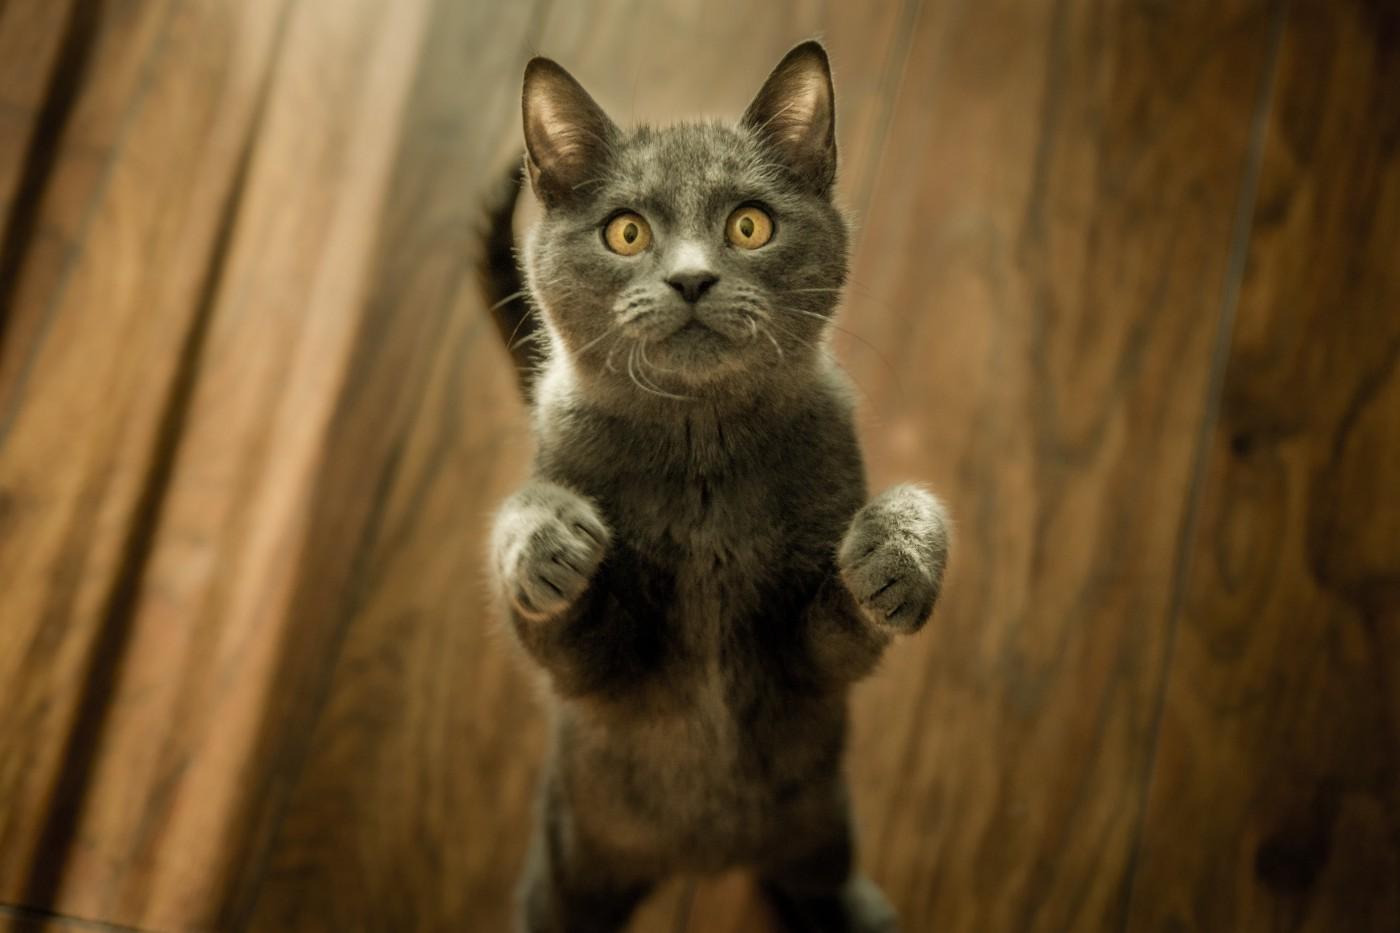 Photo of a gray cat standing on its back legs